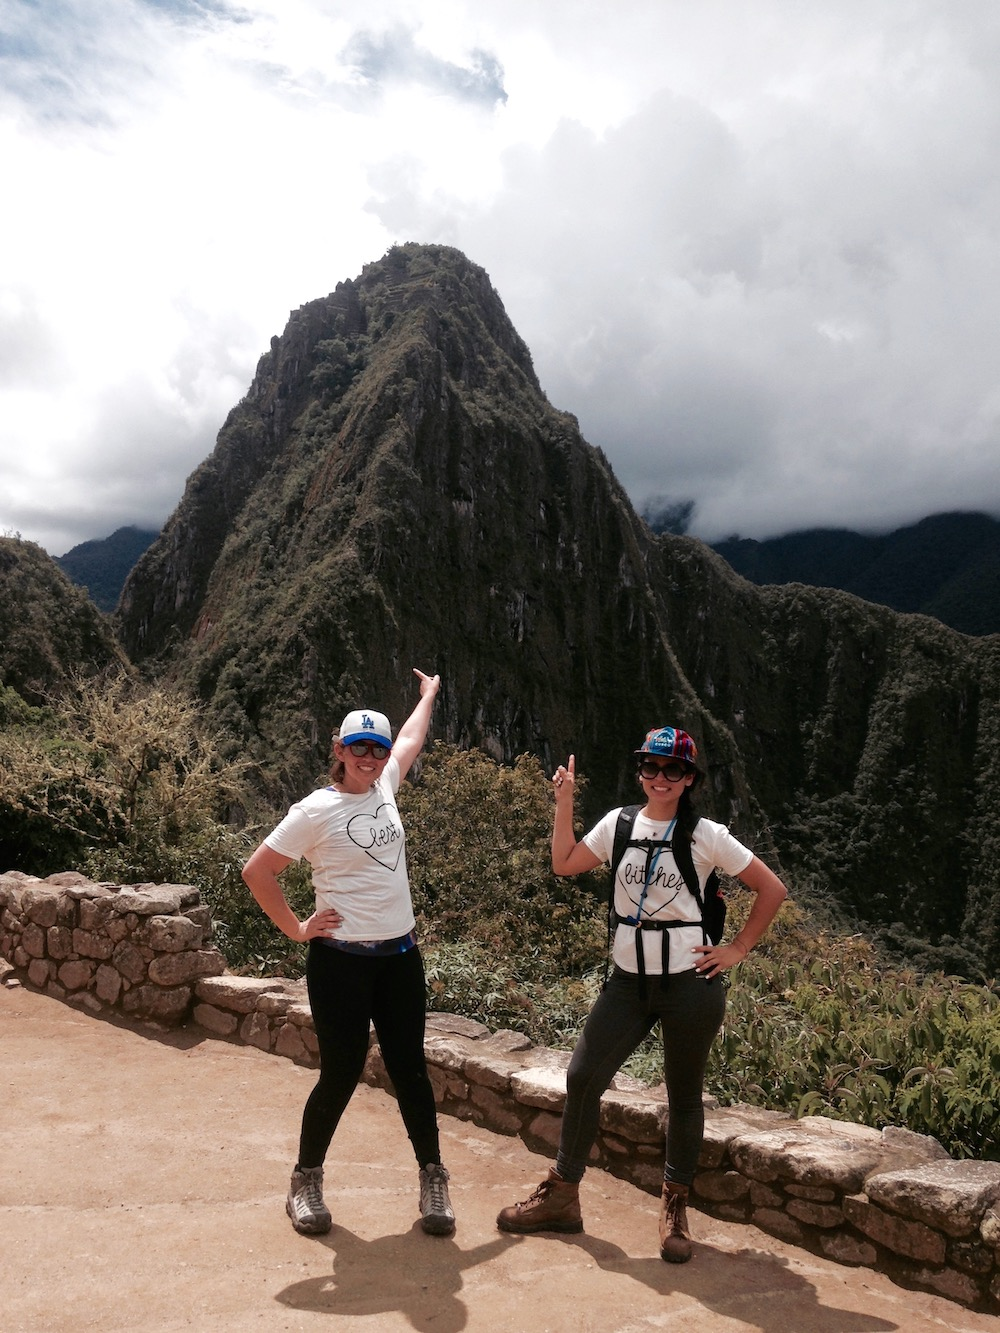 two women in matching white t-shirts standing in front of Huayna Picchu